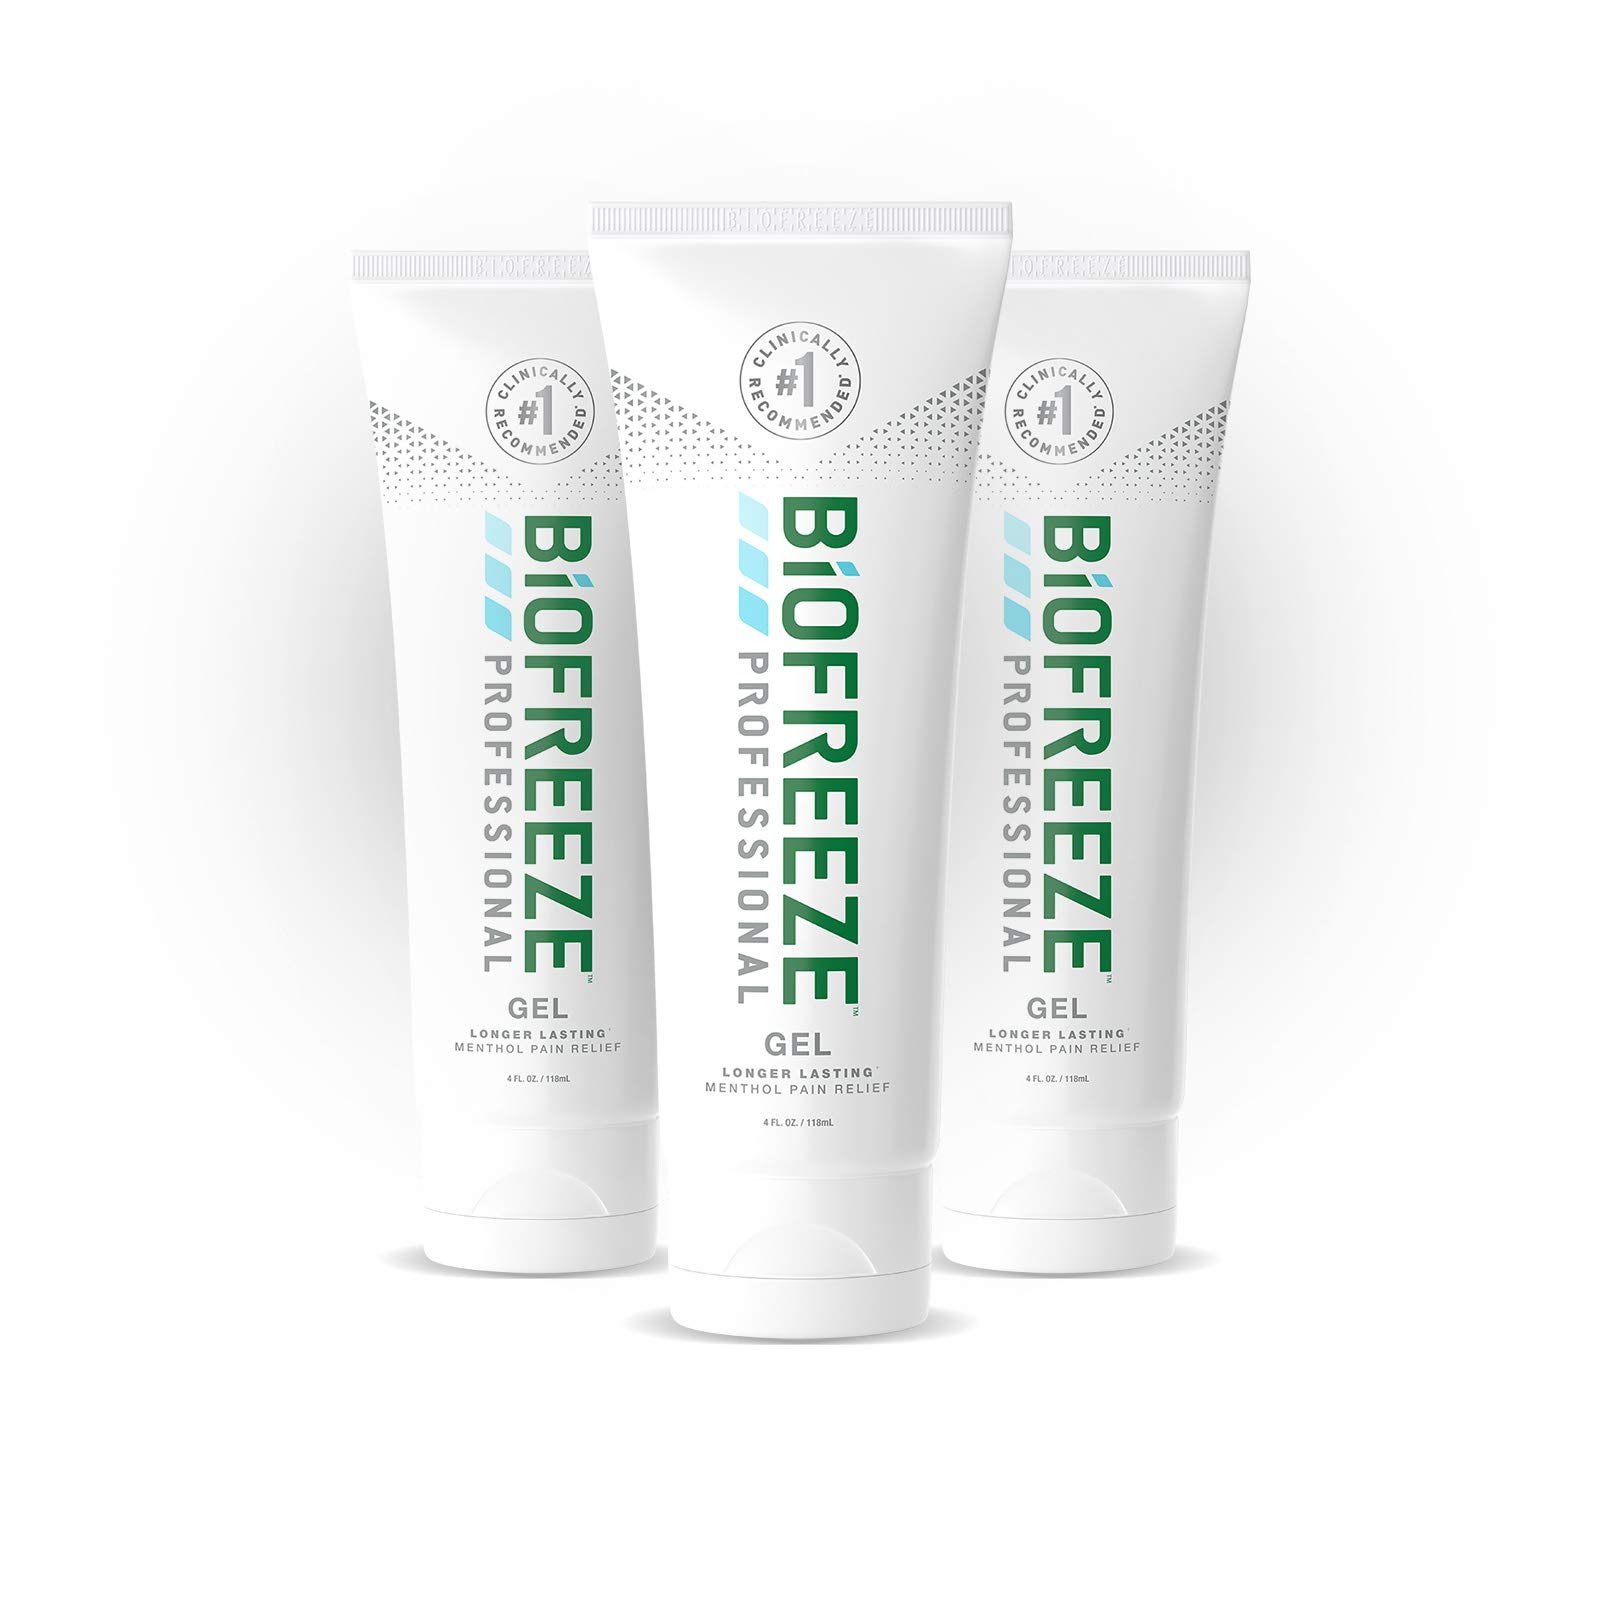 Biofreeze Professional Pain Relief Gel, 4 oz. Tube, Green, Pack of 3 by Biofreeze